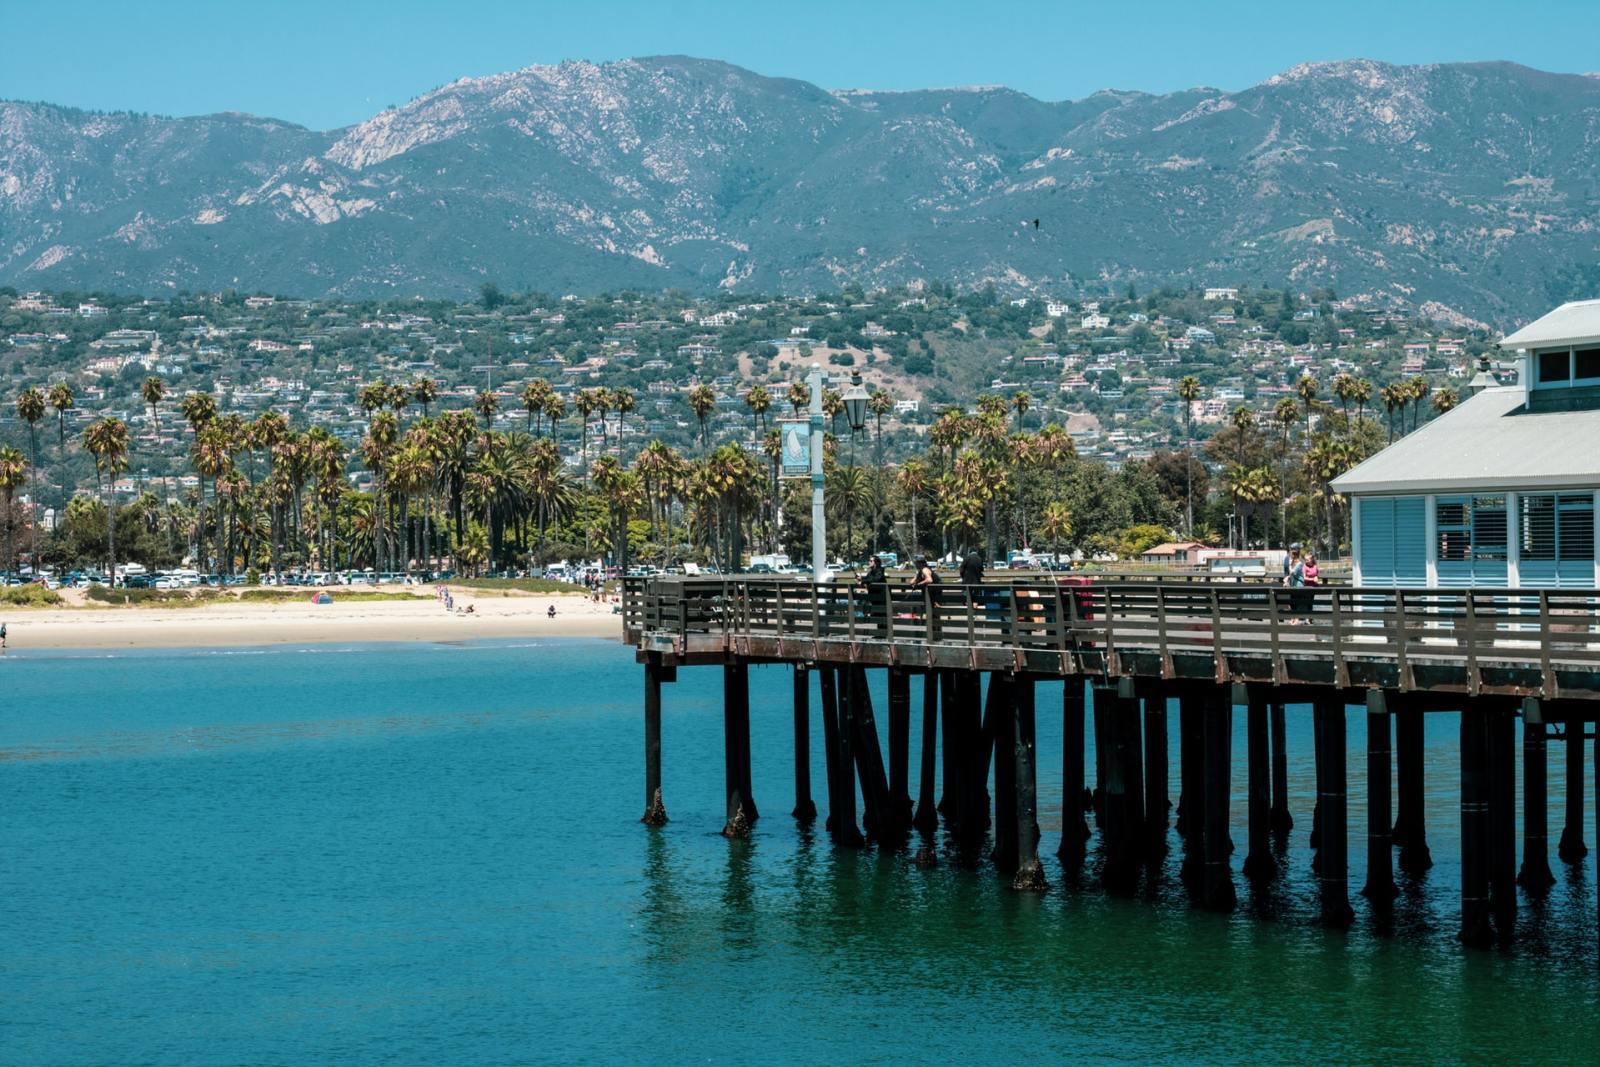 The Best Areas to Stay in Santa Barbara, CA